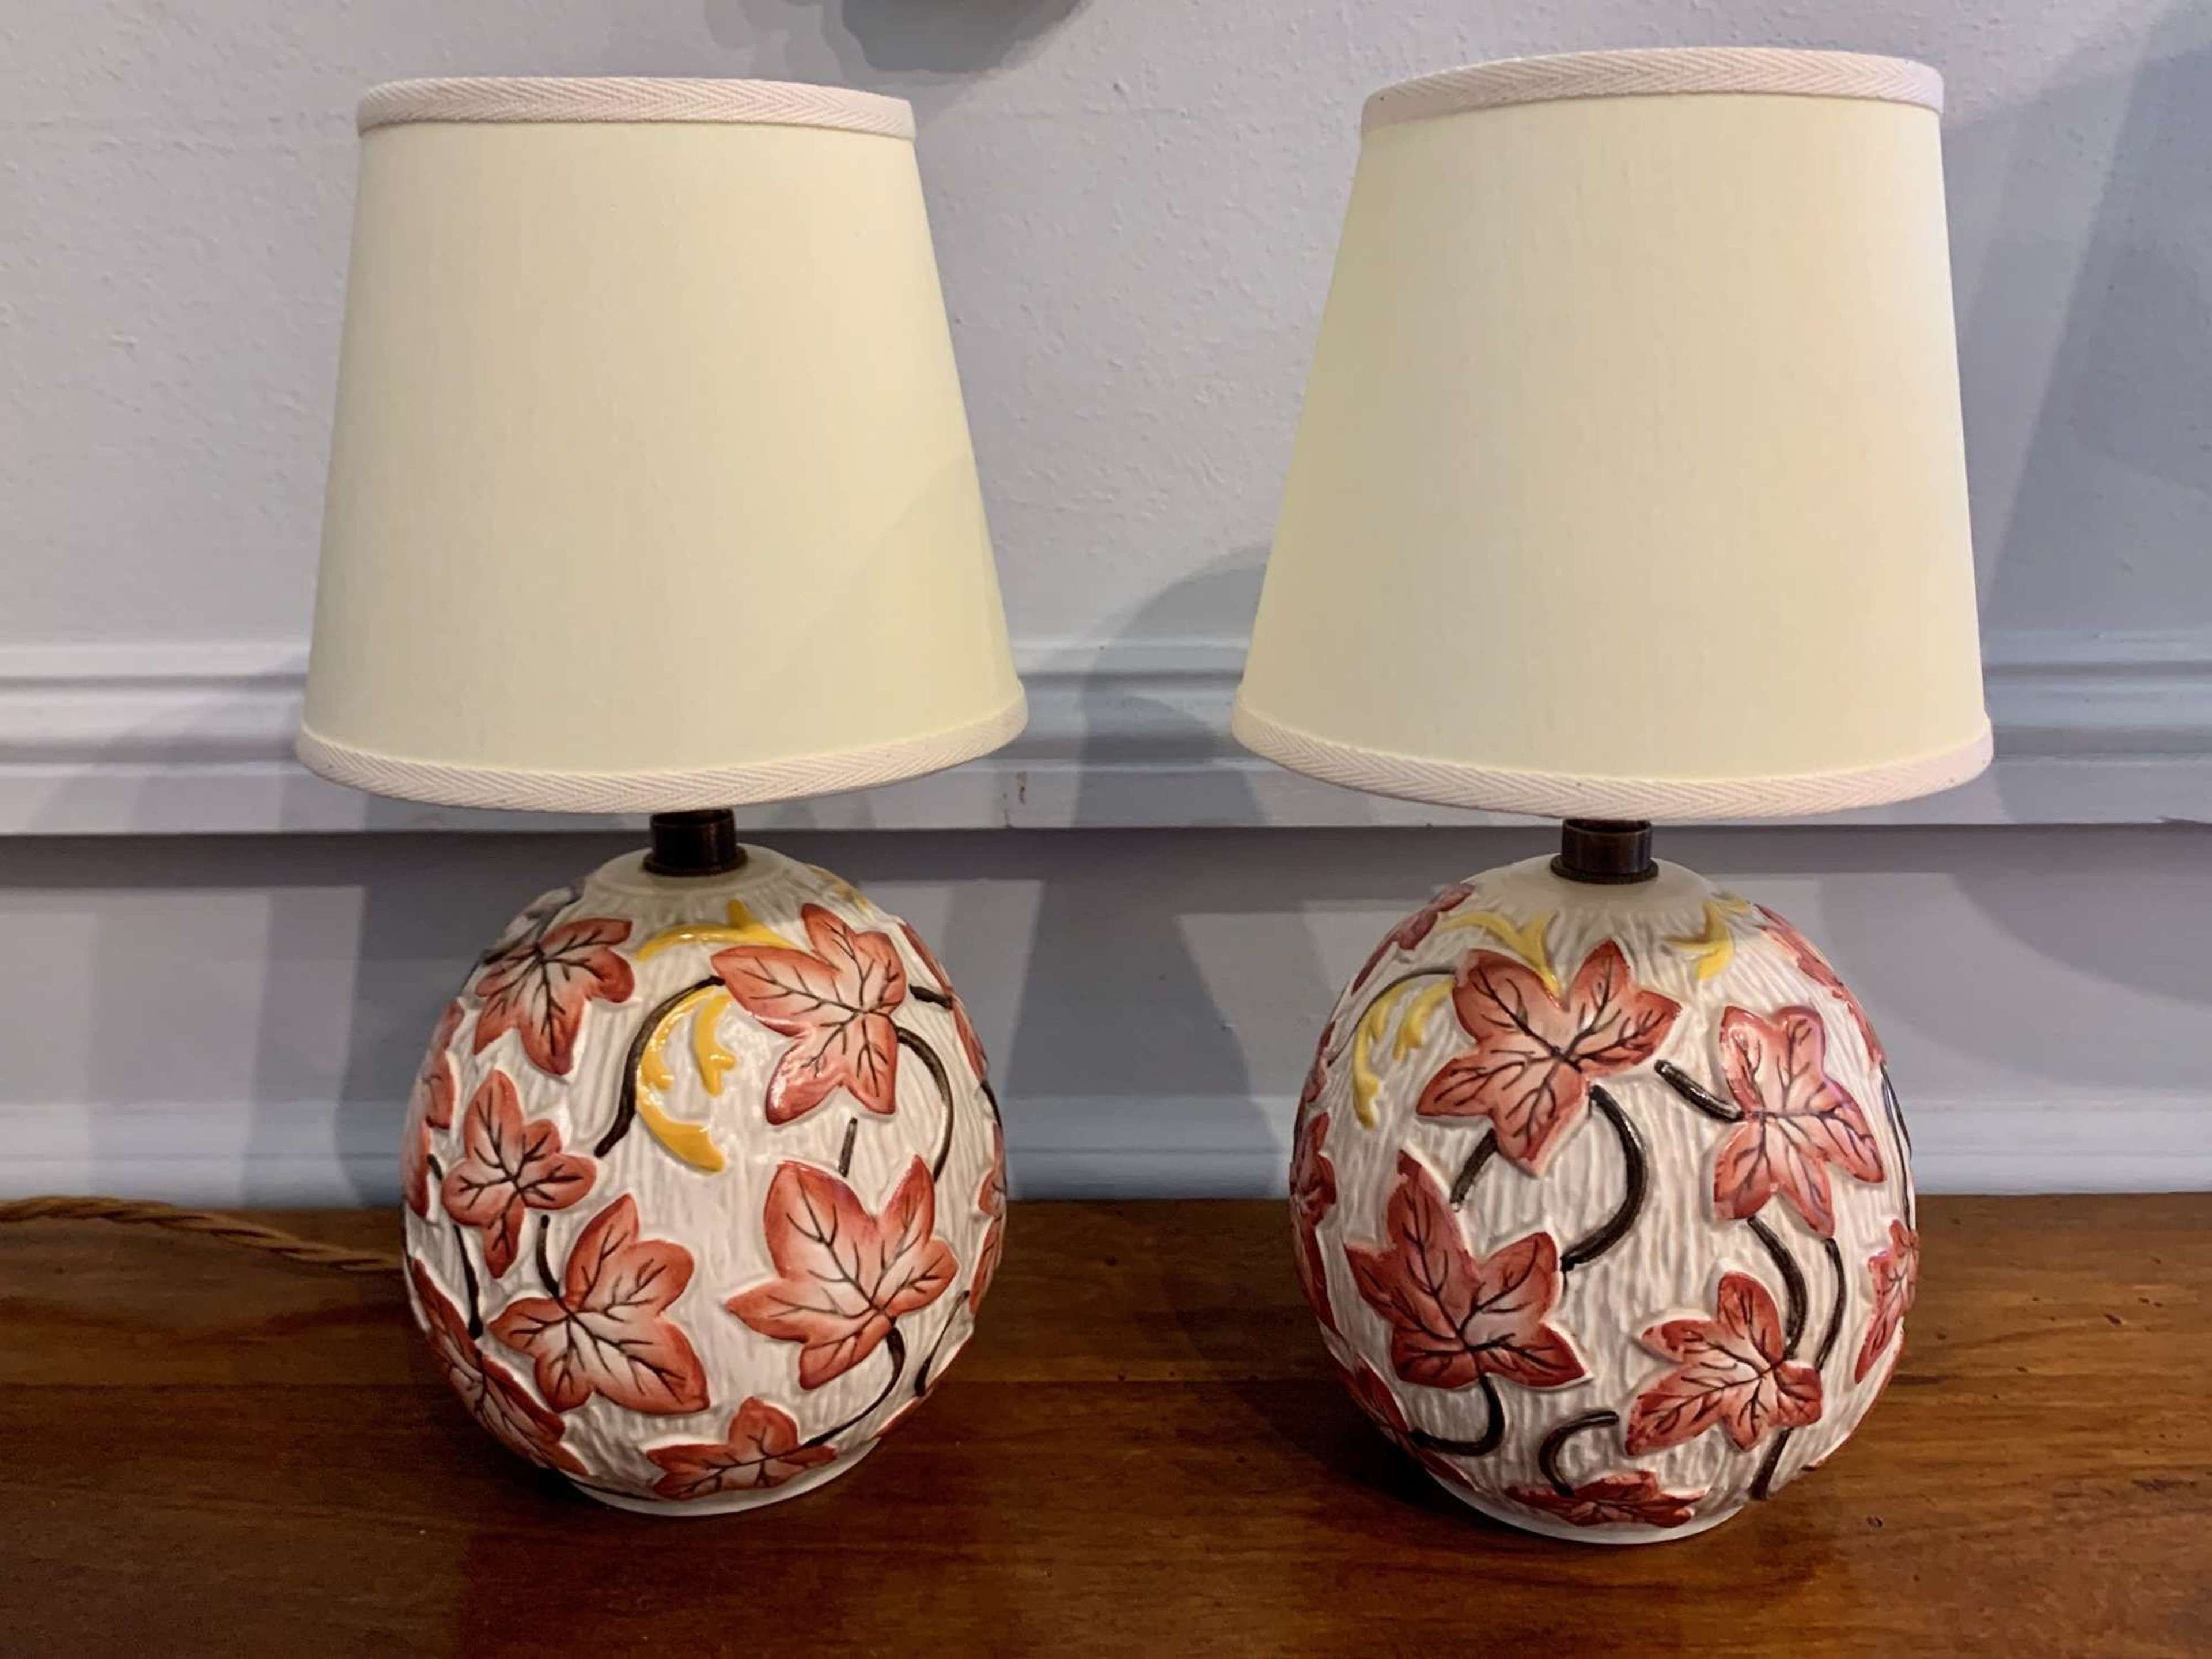 red ivy 1950's bedside ceramic lamps